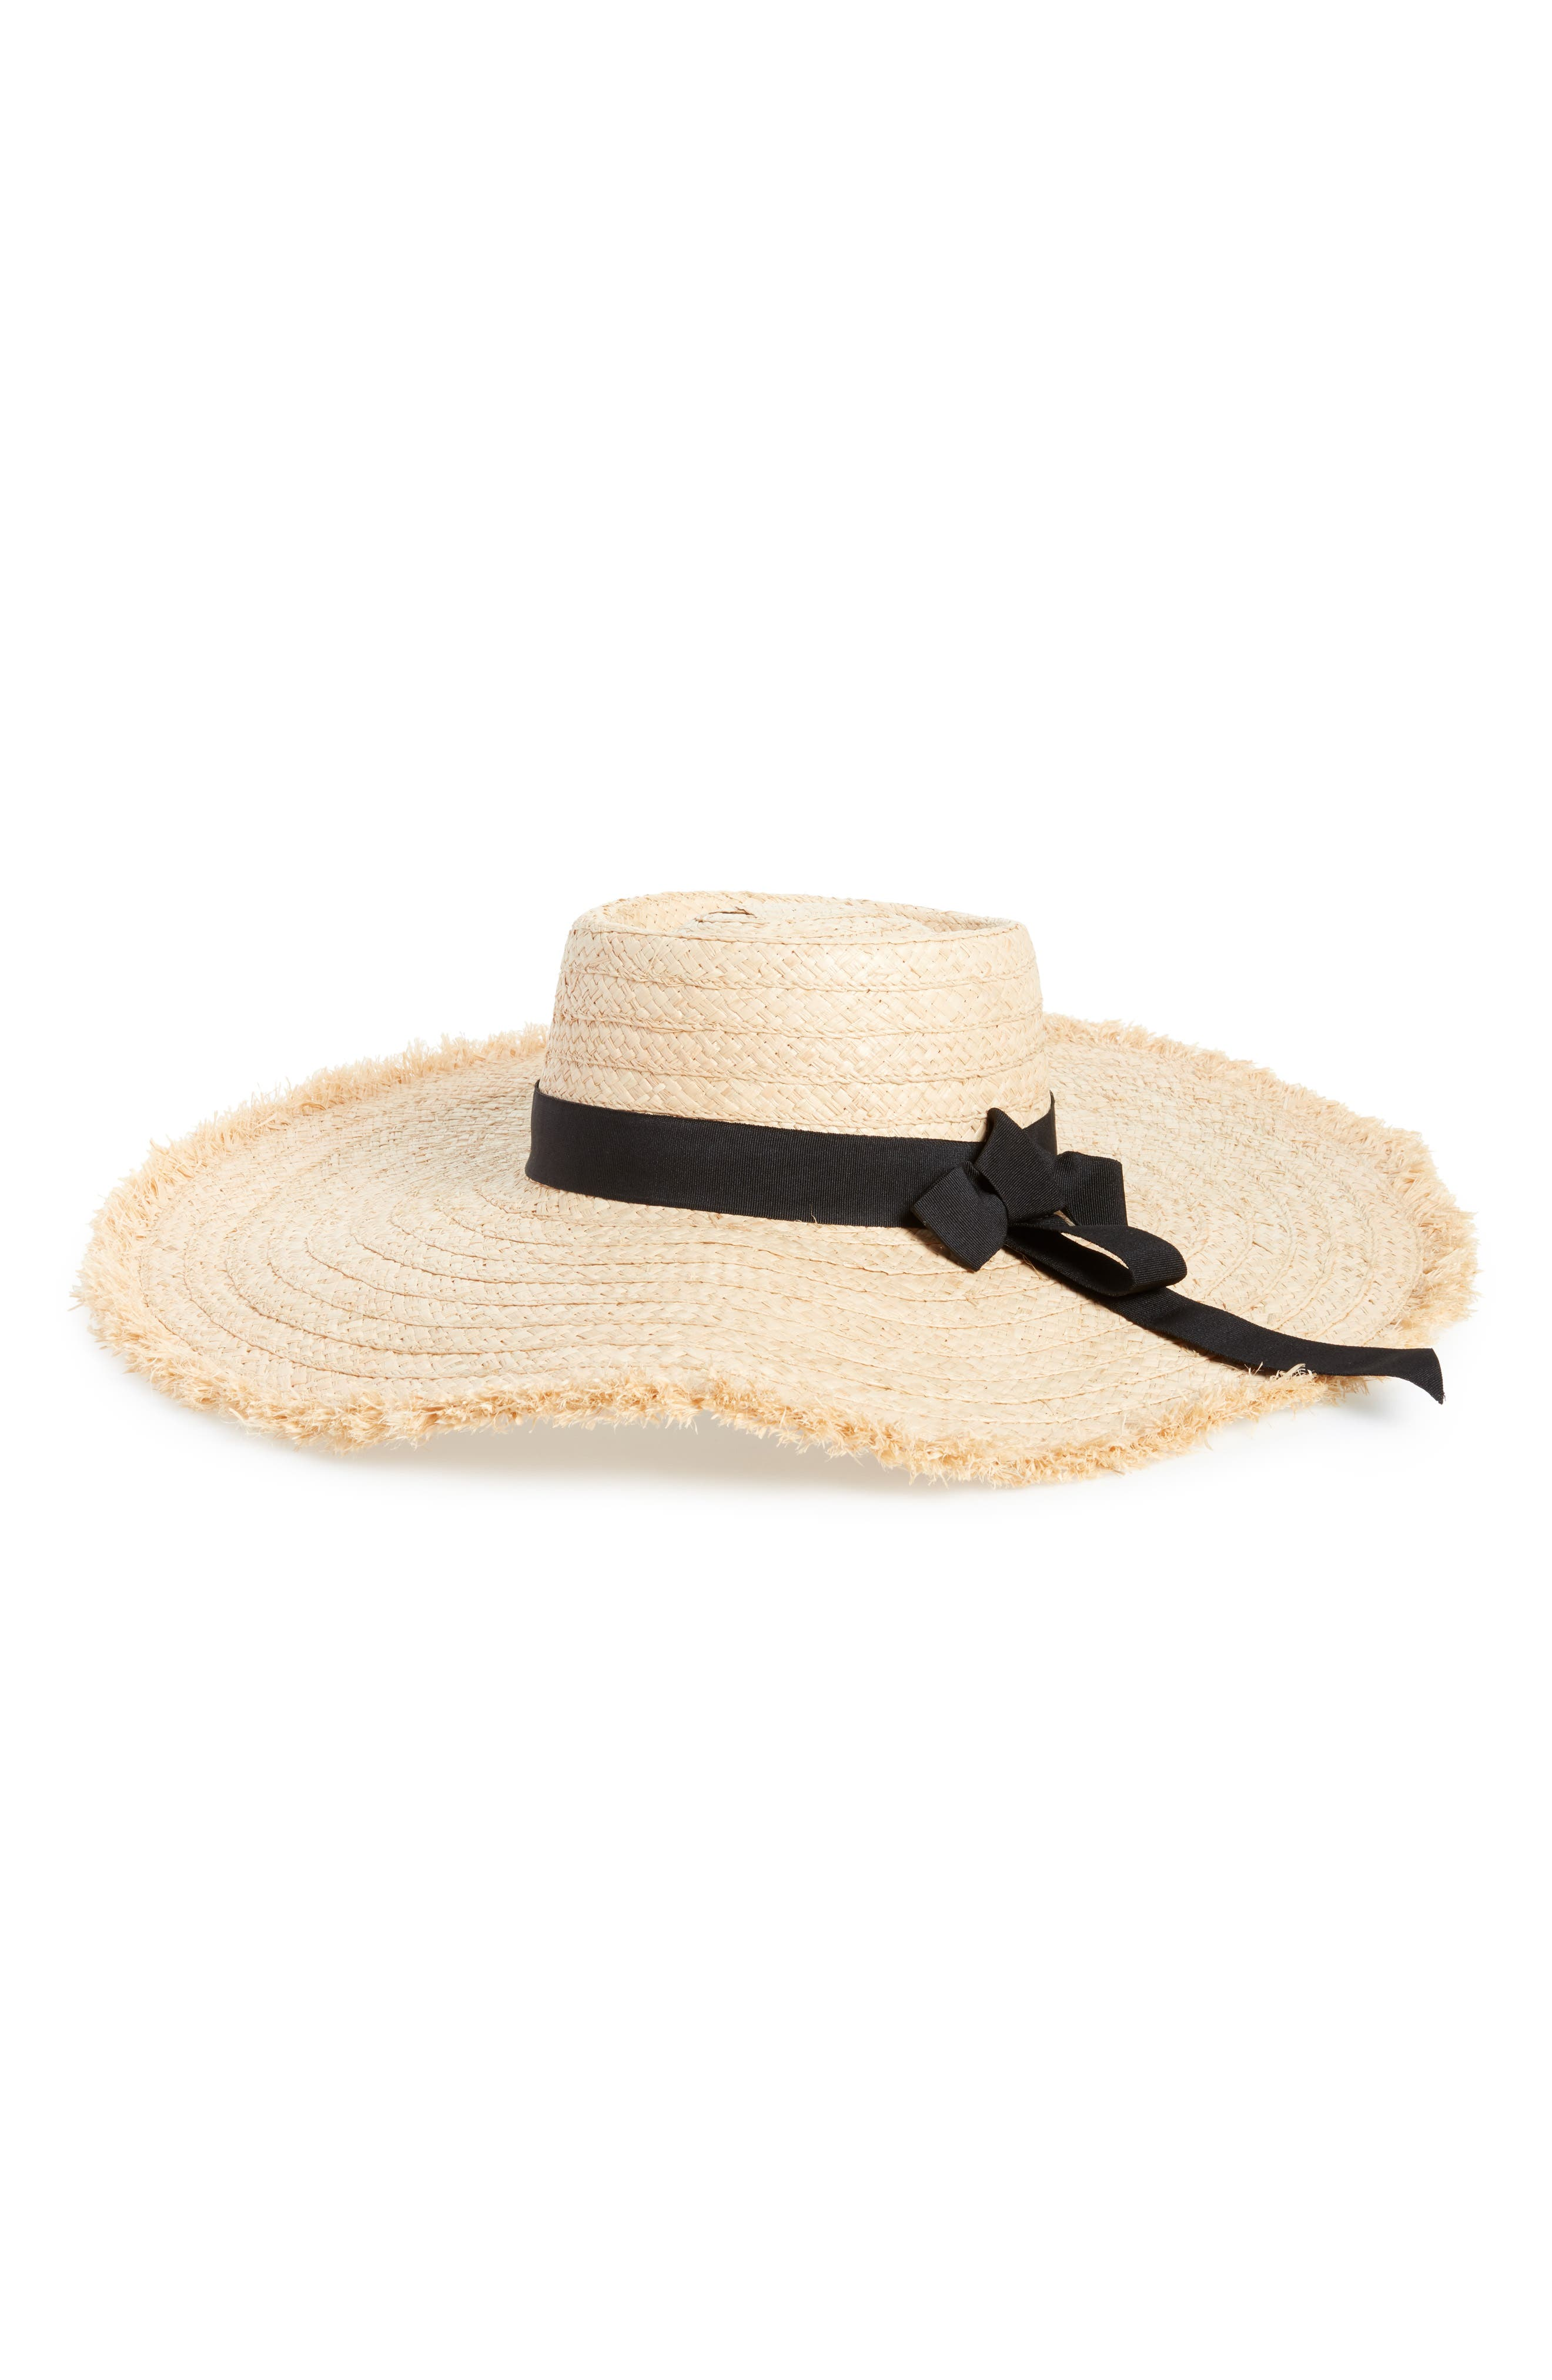 Wide Brim Sun Hat,                         Main,                         color, IVORY